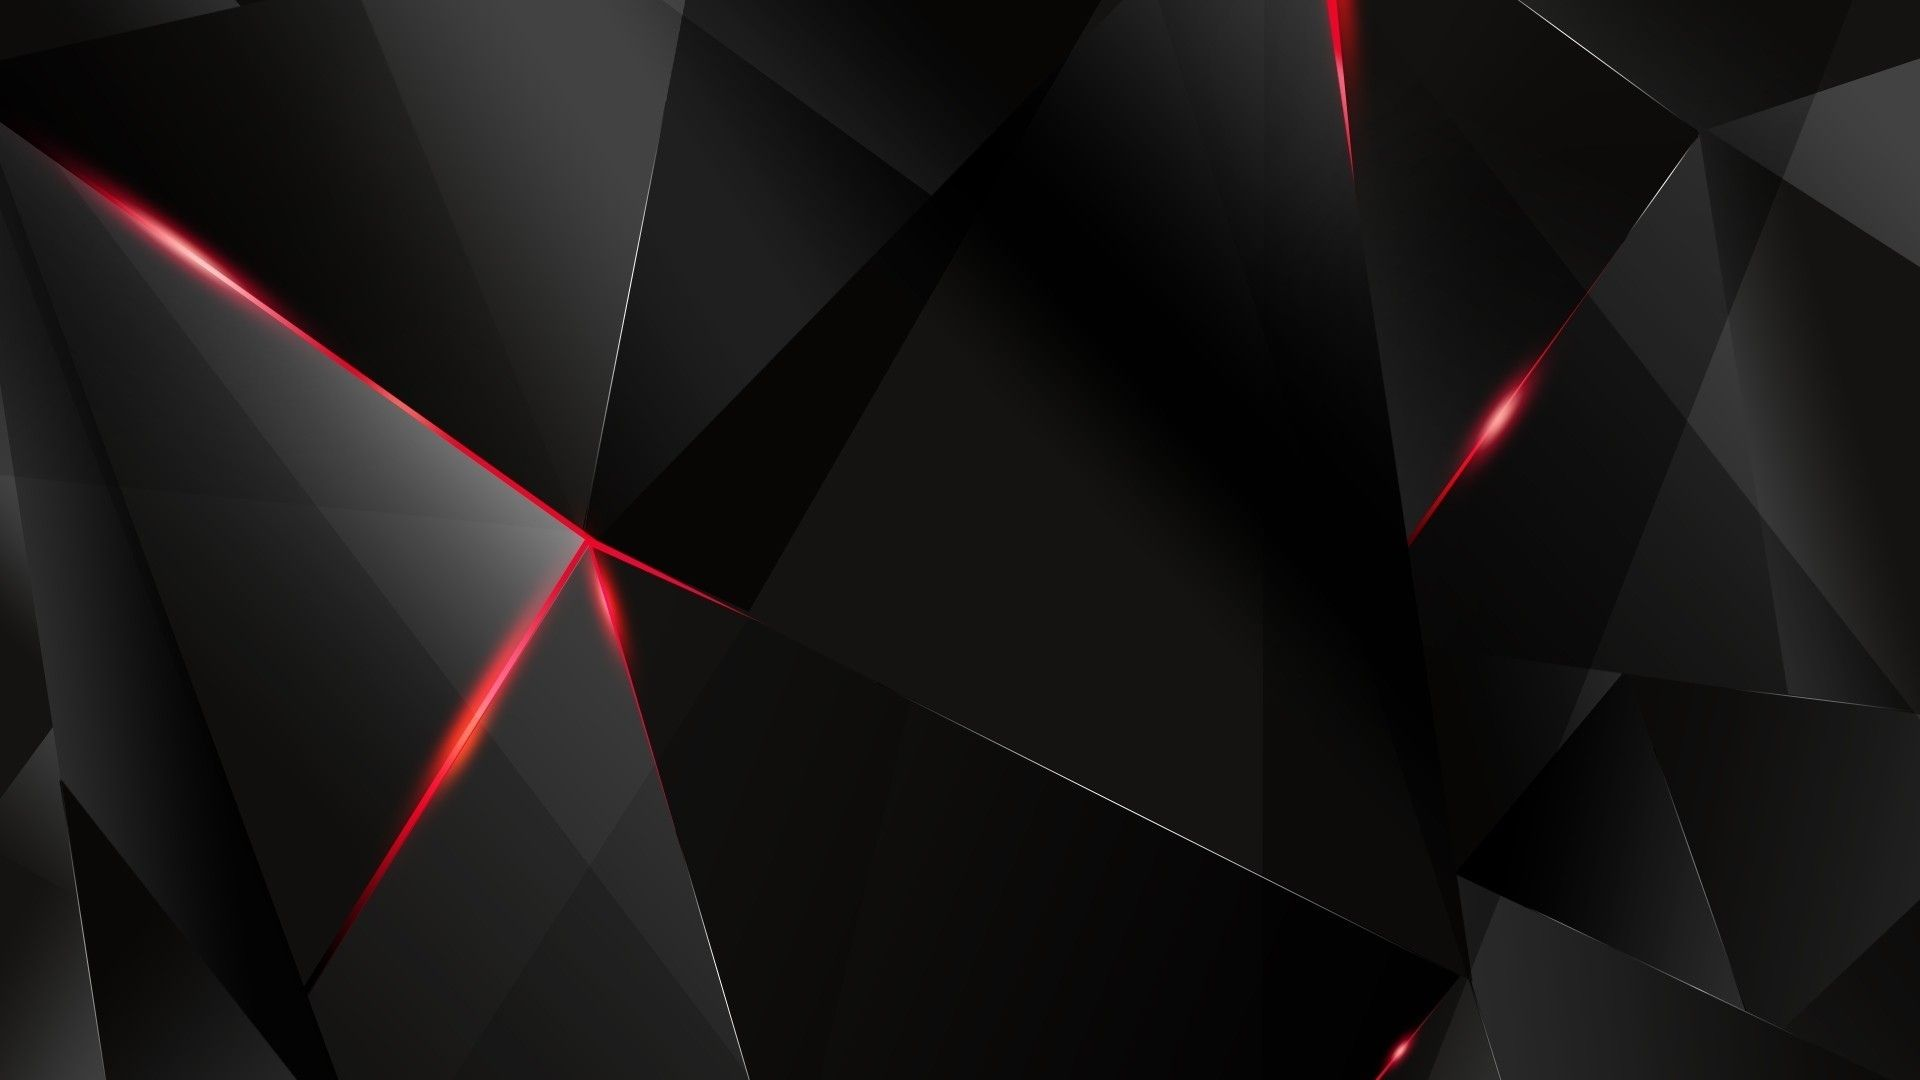 Hd wallpaper red and black - Black Background Leather Hd Desktop Wallpaper Widescreen High